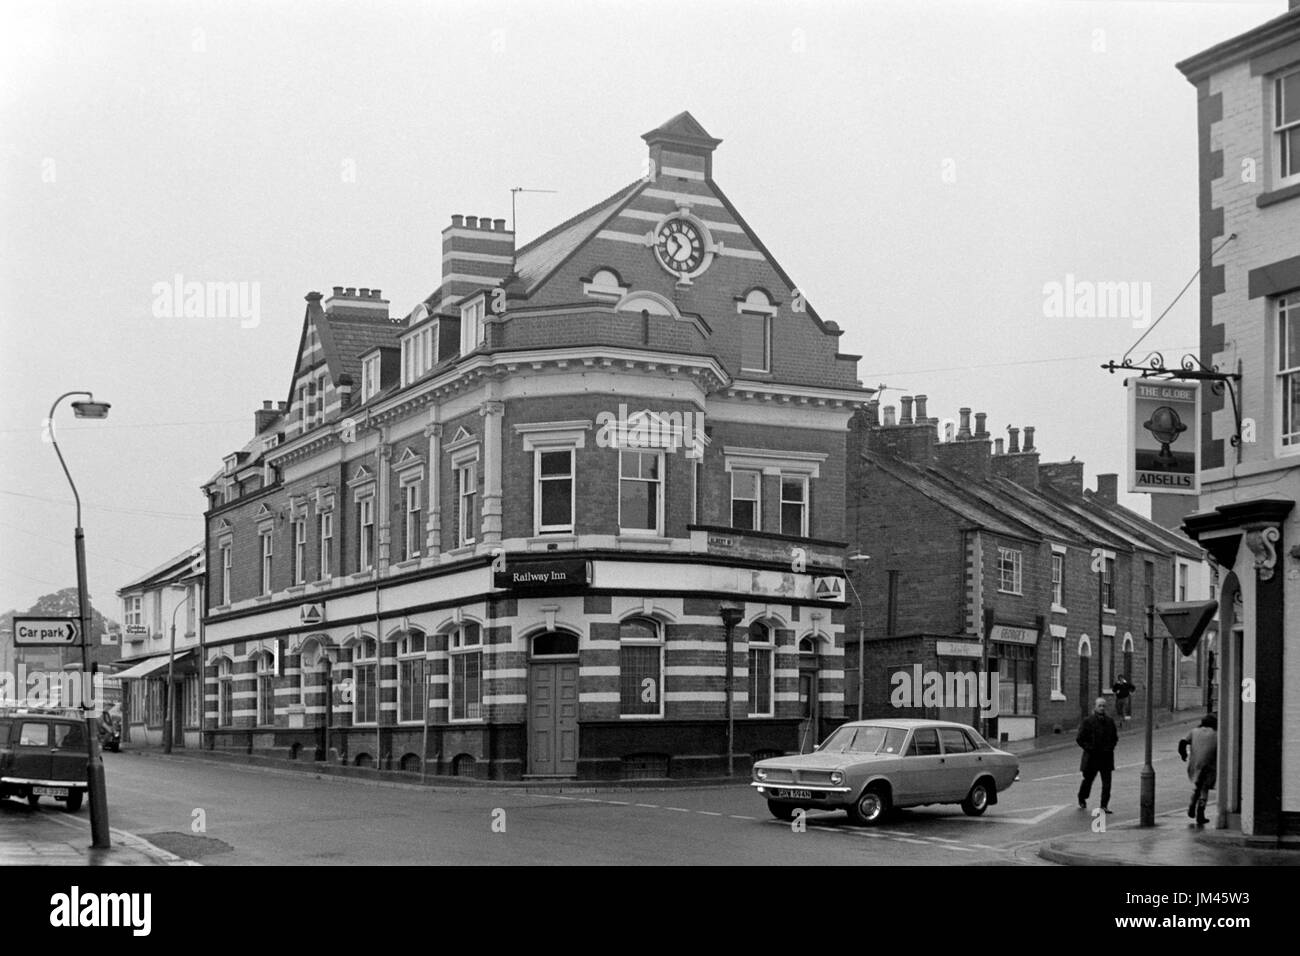 the railway inn on railway terrace rugby england uk in the 1970s - Stock Image